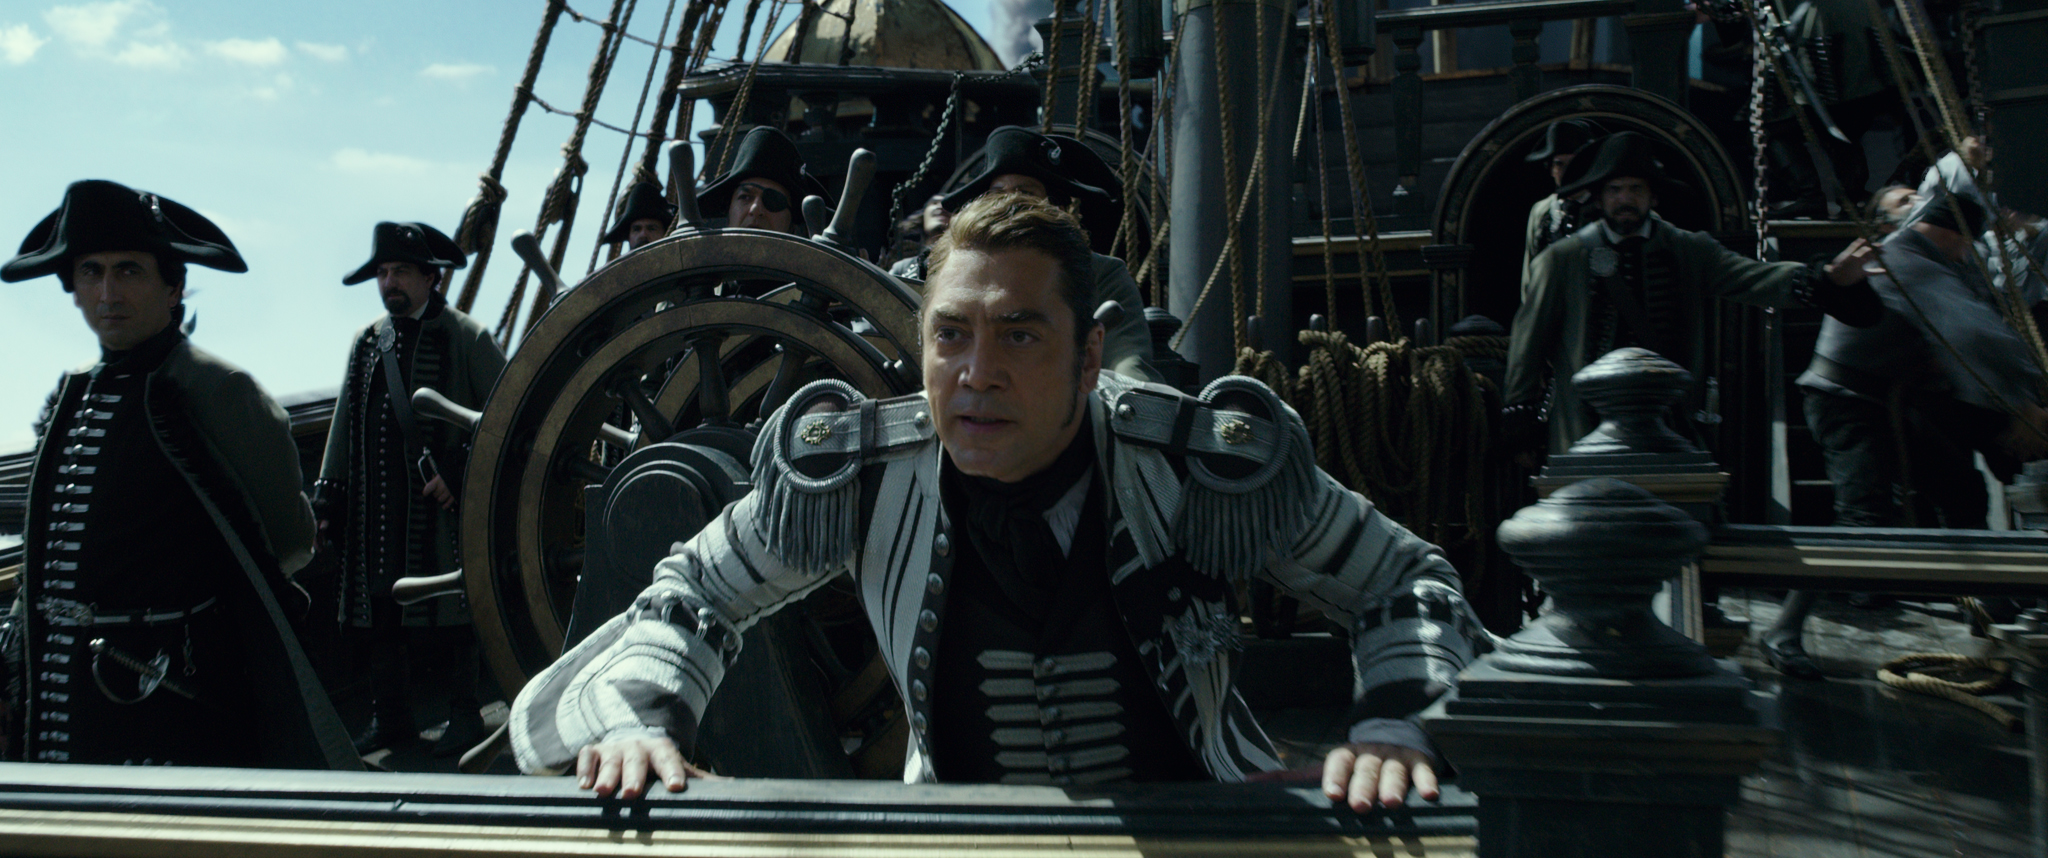 box office memorial day weekend pirates of the caribbean